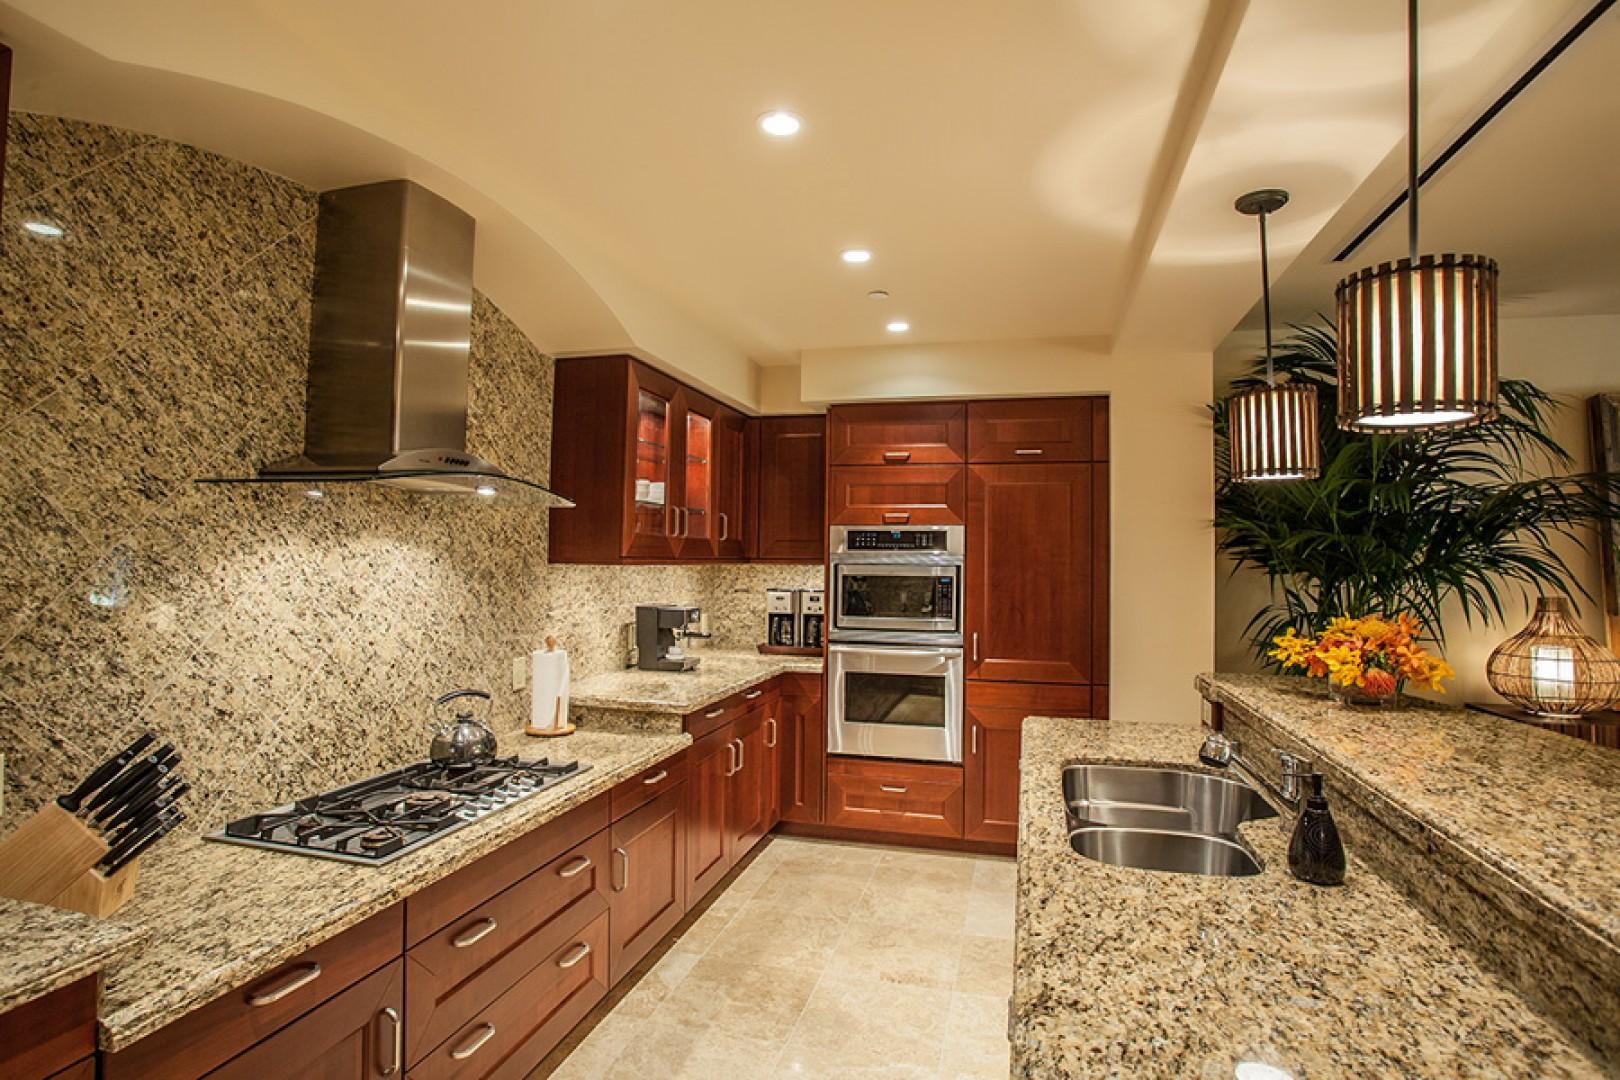 Sun Splash C301 Exceptionally Well Equipped and Clean Kitchen with Espresso Maker and Dual Coffee Makers!